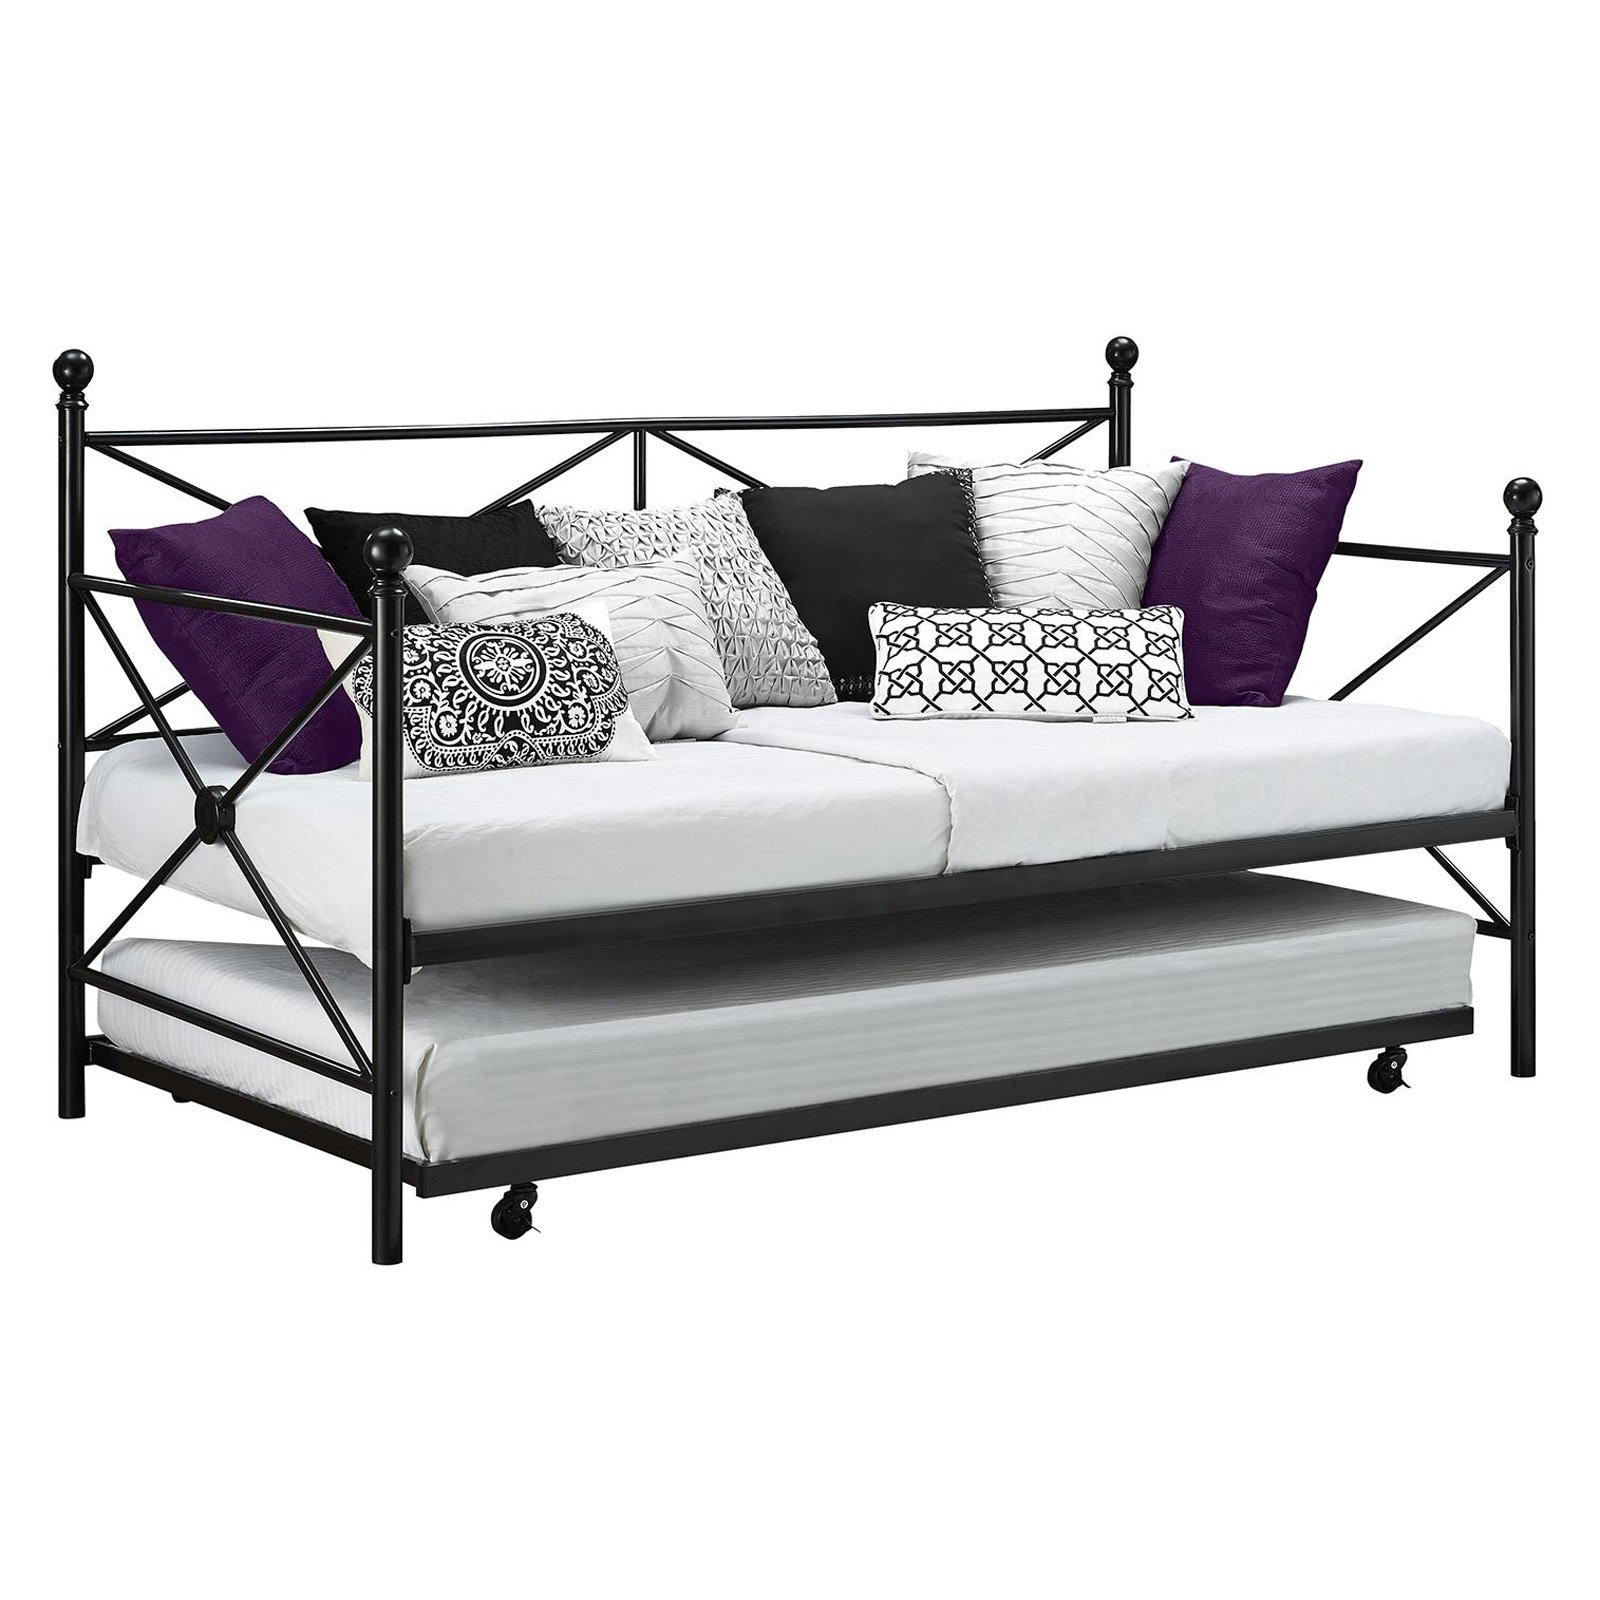 DHP Lubin Metal Daybed and Trundle Frame Set, Black